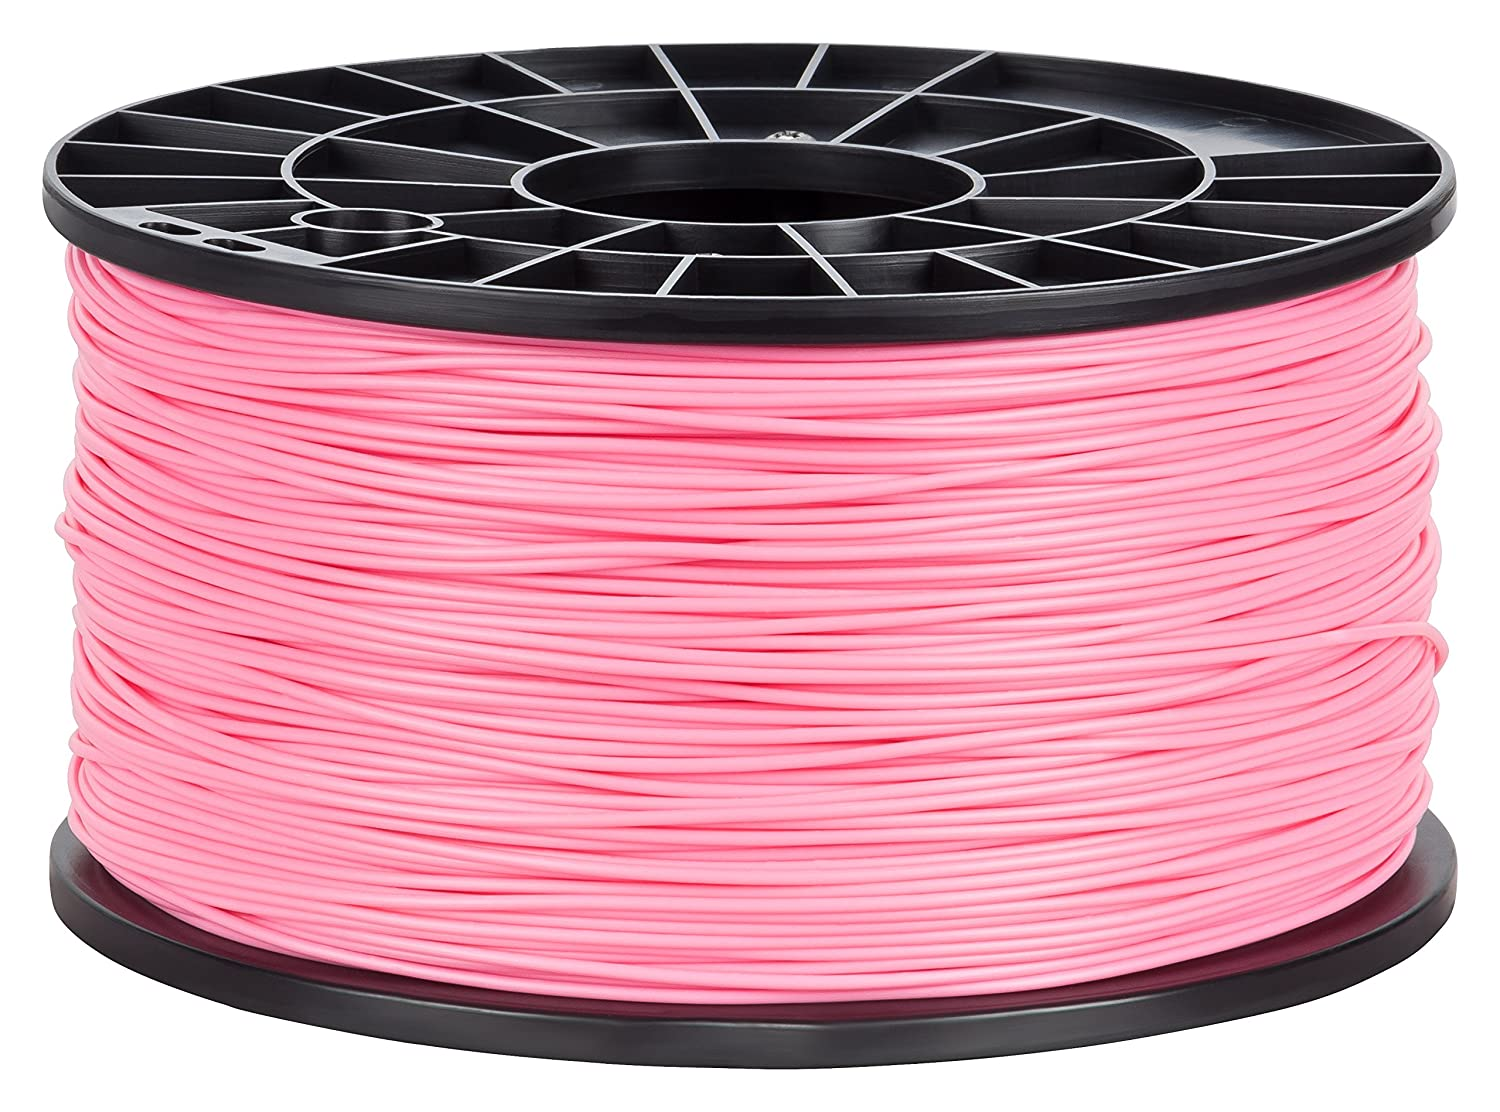 NuNus Impresora 3D Polypropylen (PP) (1.75mm, Rosa): Amazon.es ...